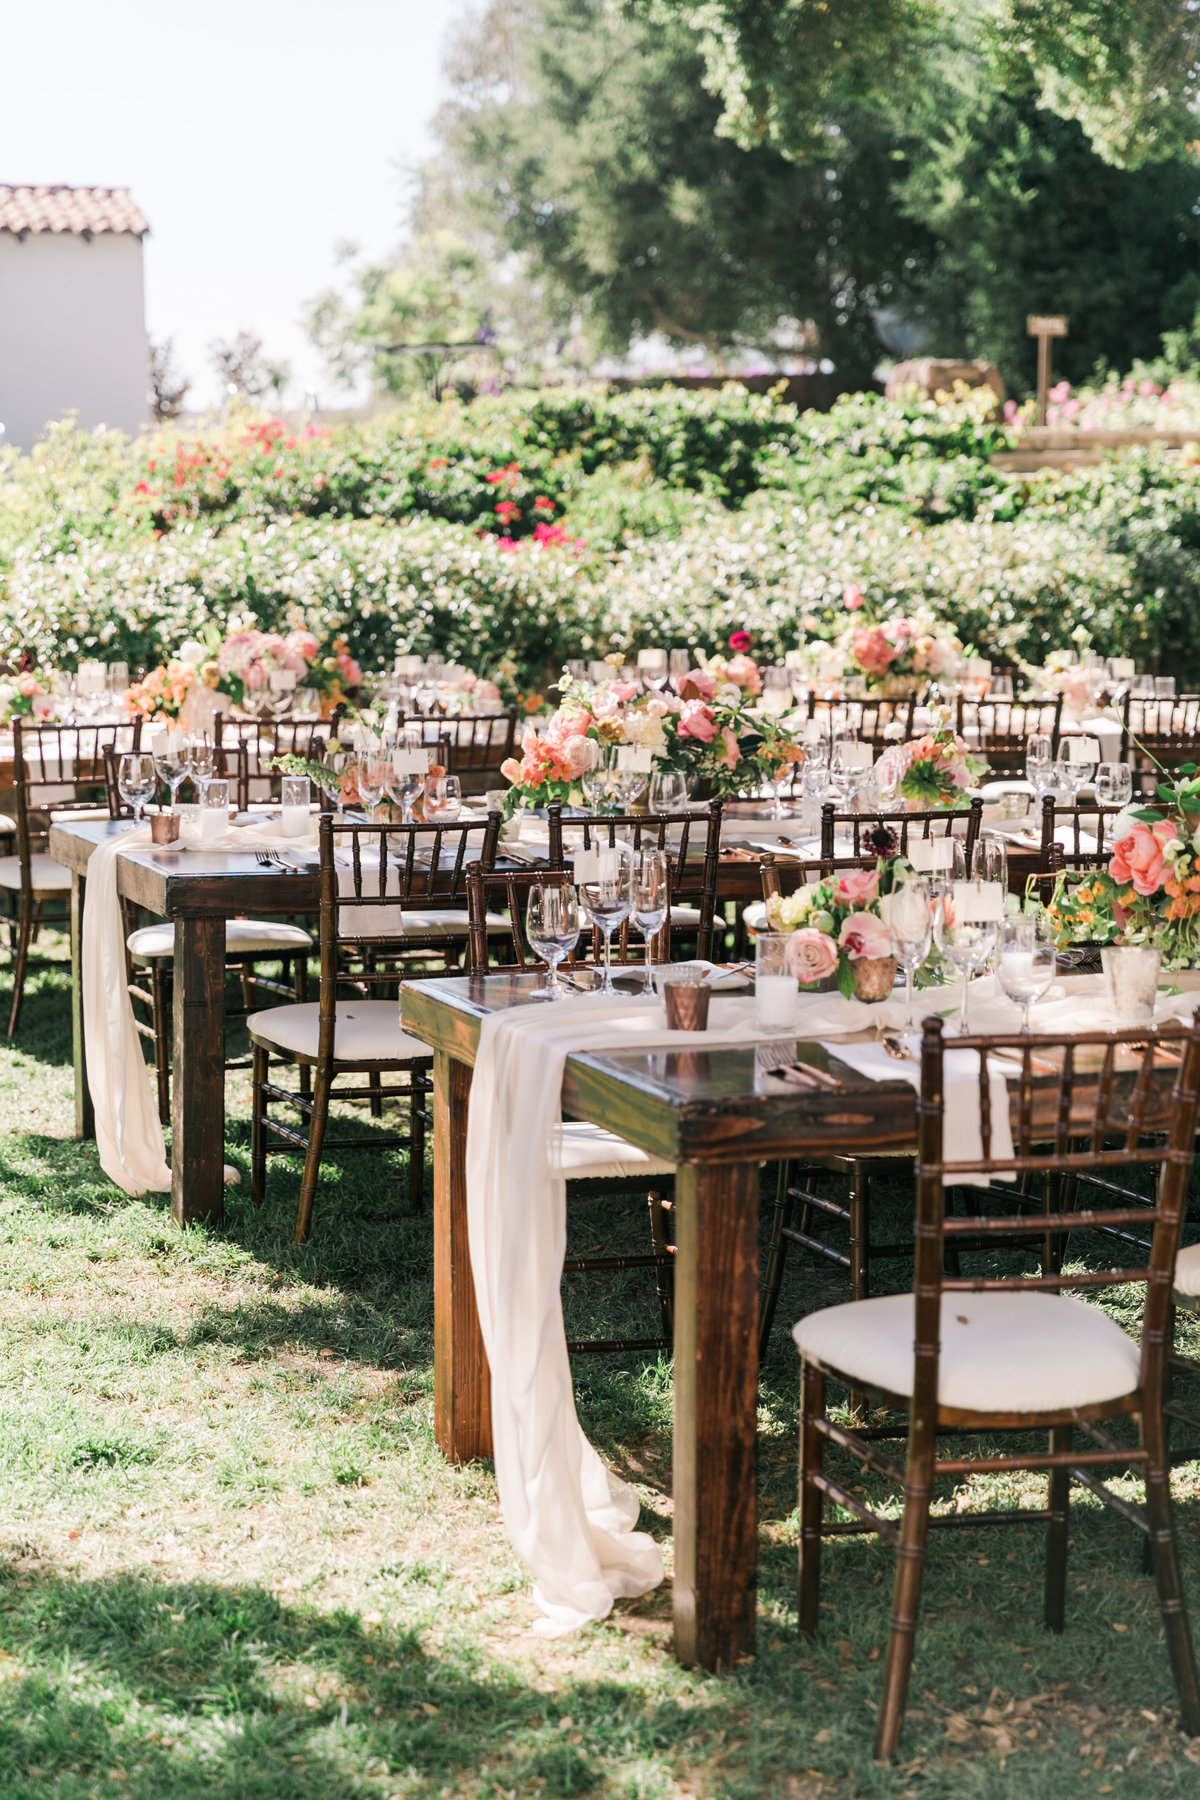 Quail_Ranch_Blush_California_Wedding_Valorie_Darling_Photography - 87 of 151